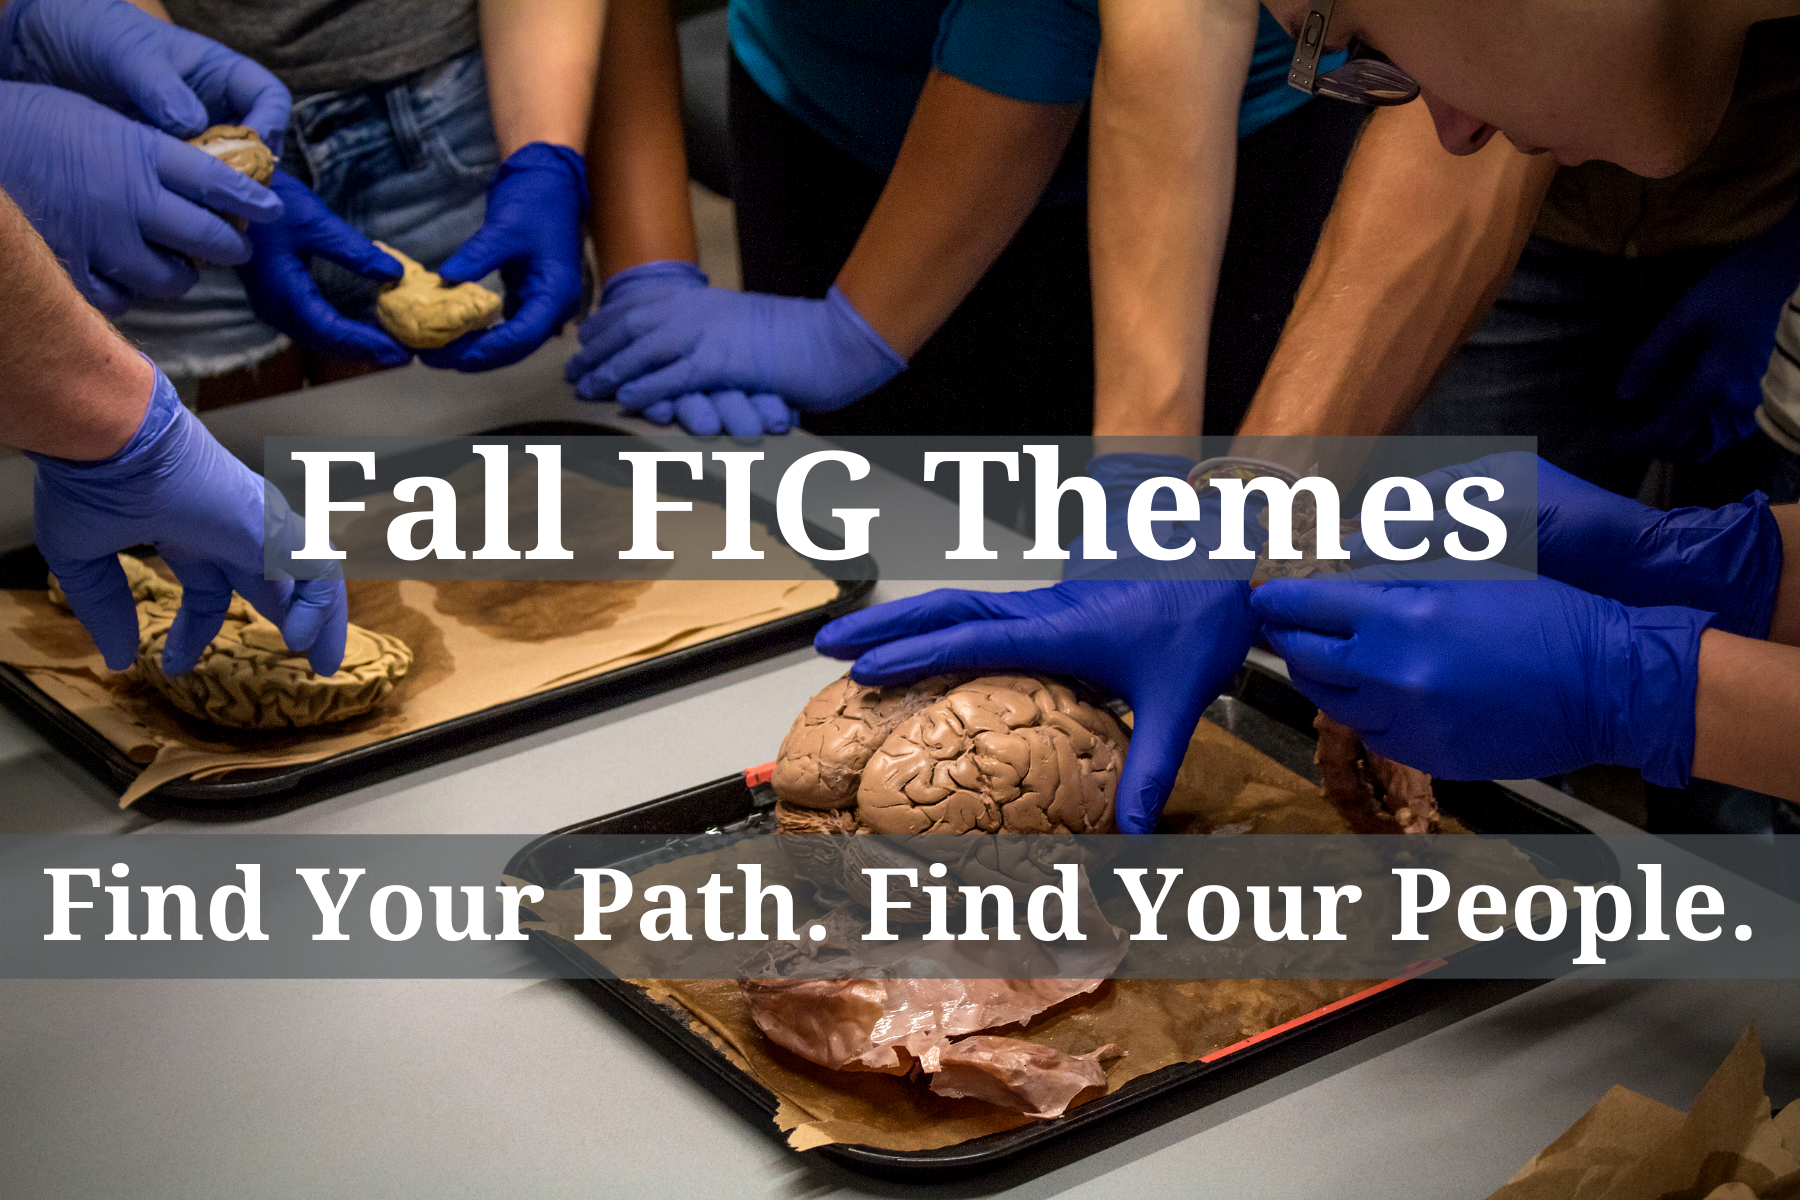 Fall FIG Themes: Find Your Path. Find Your People.